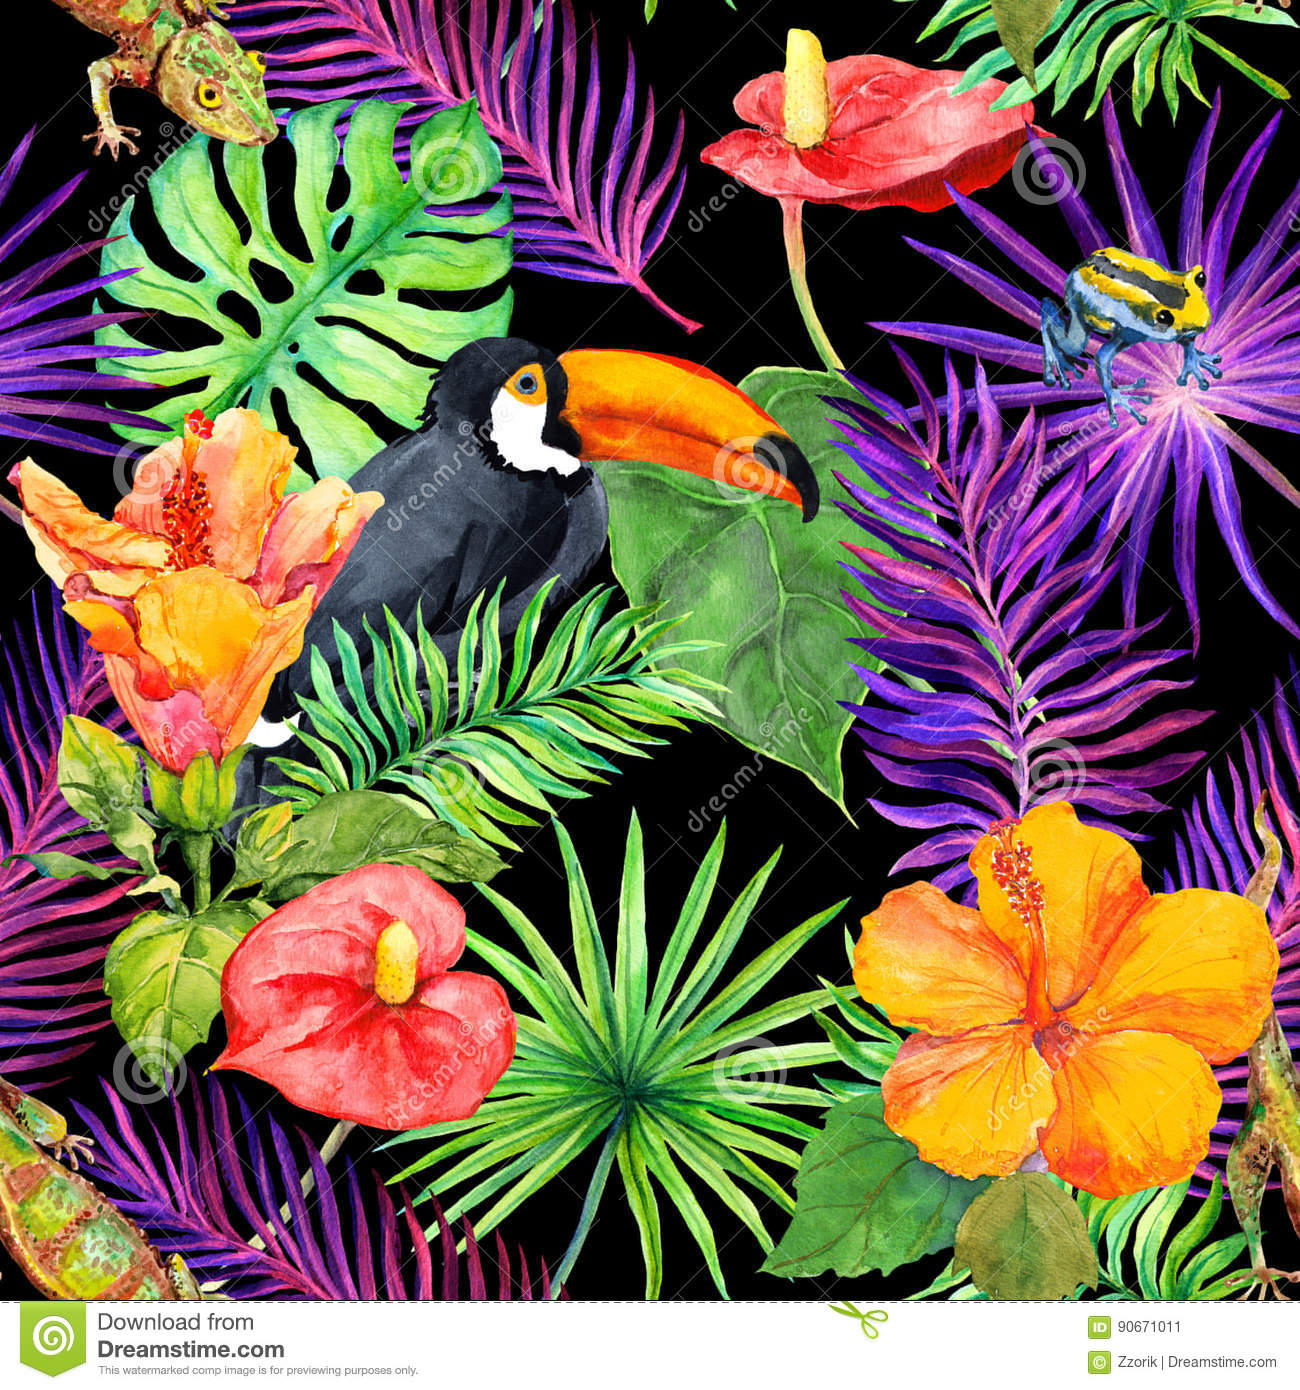 Frida Kahlo Wallpaper Iphone Tropical Leaves Exotic Flowers Toucan Bird Gecko